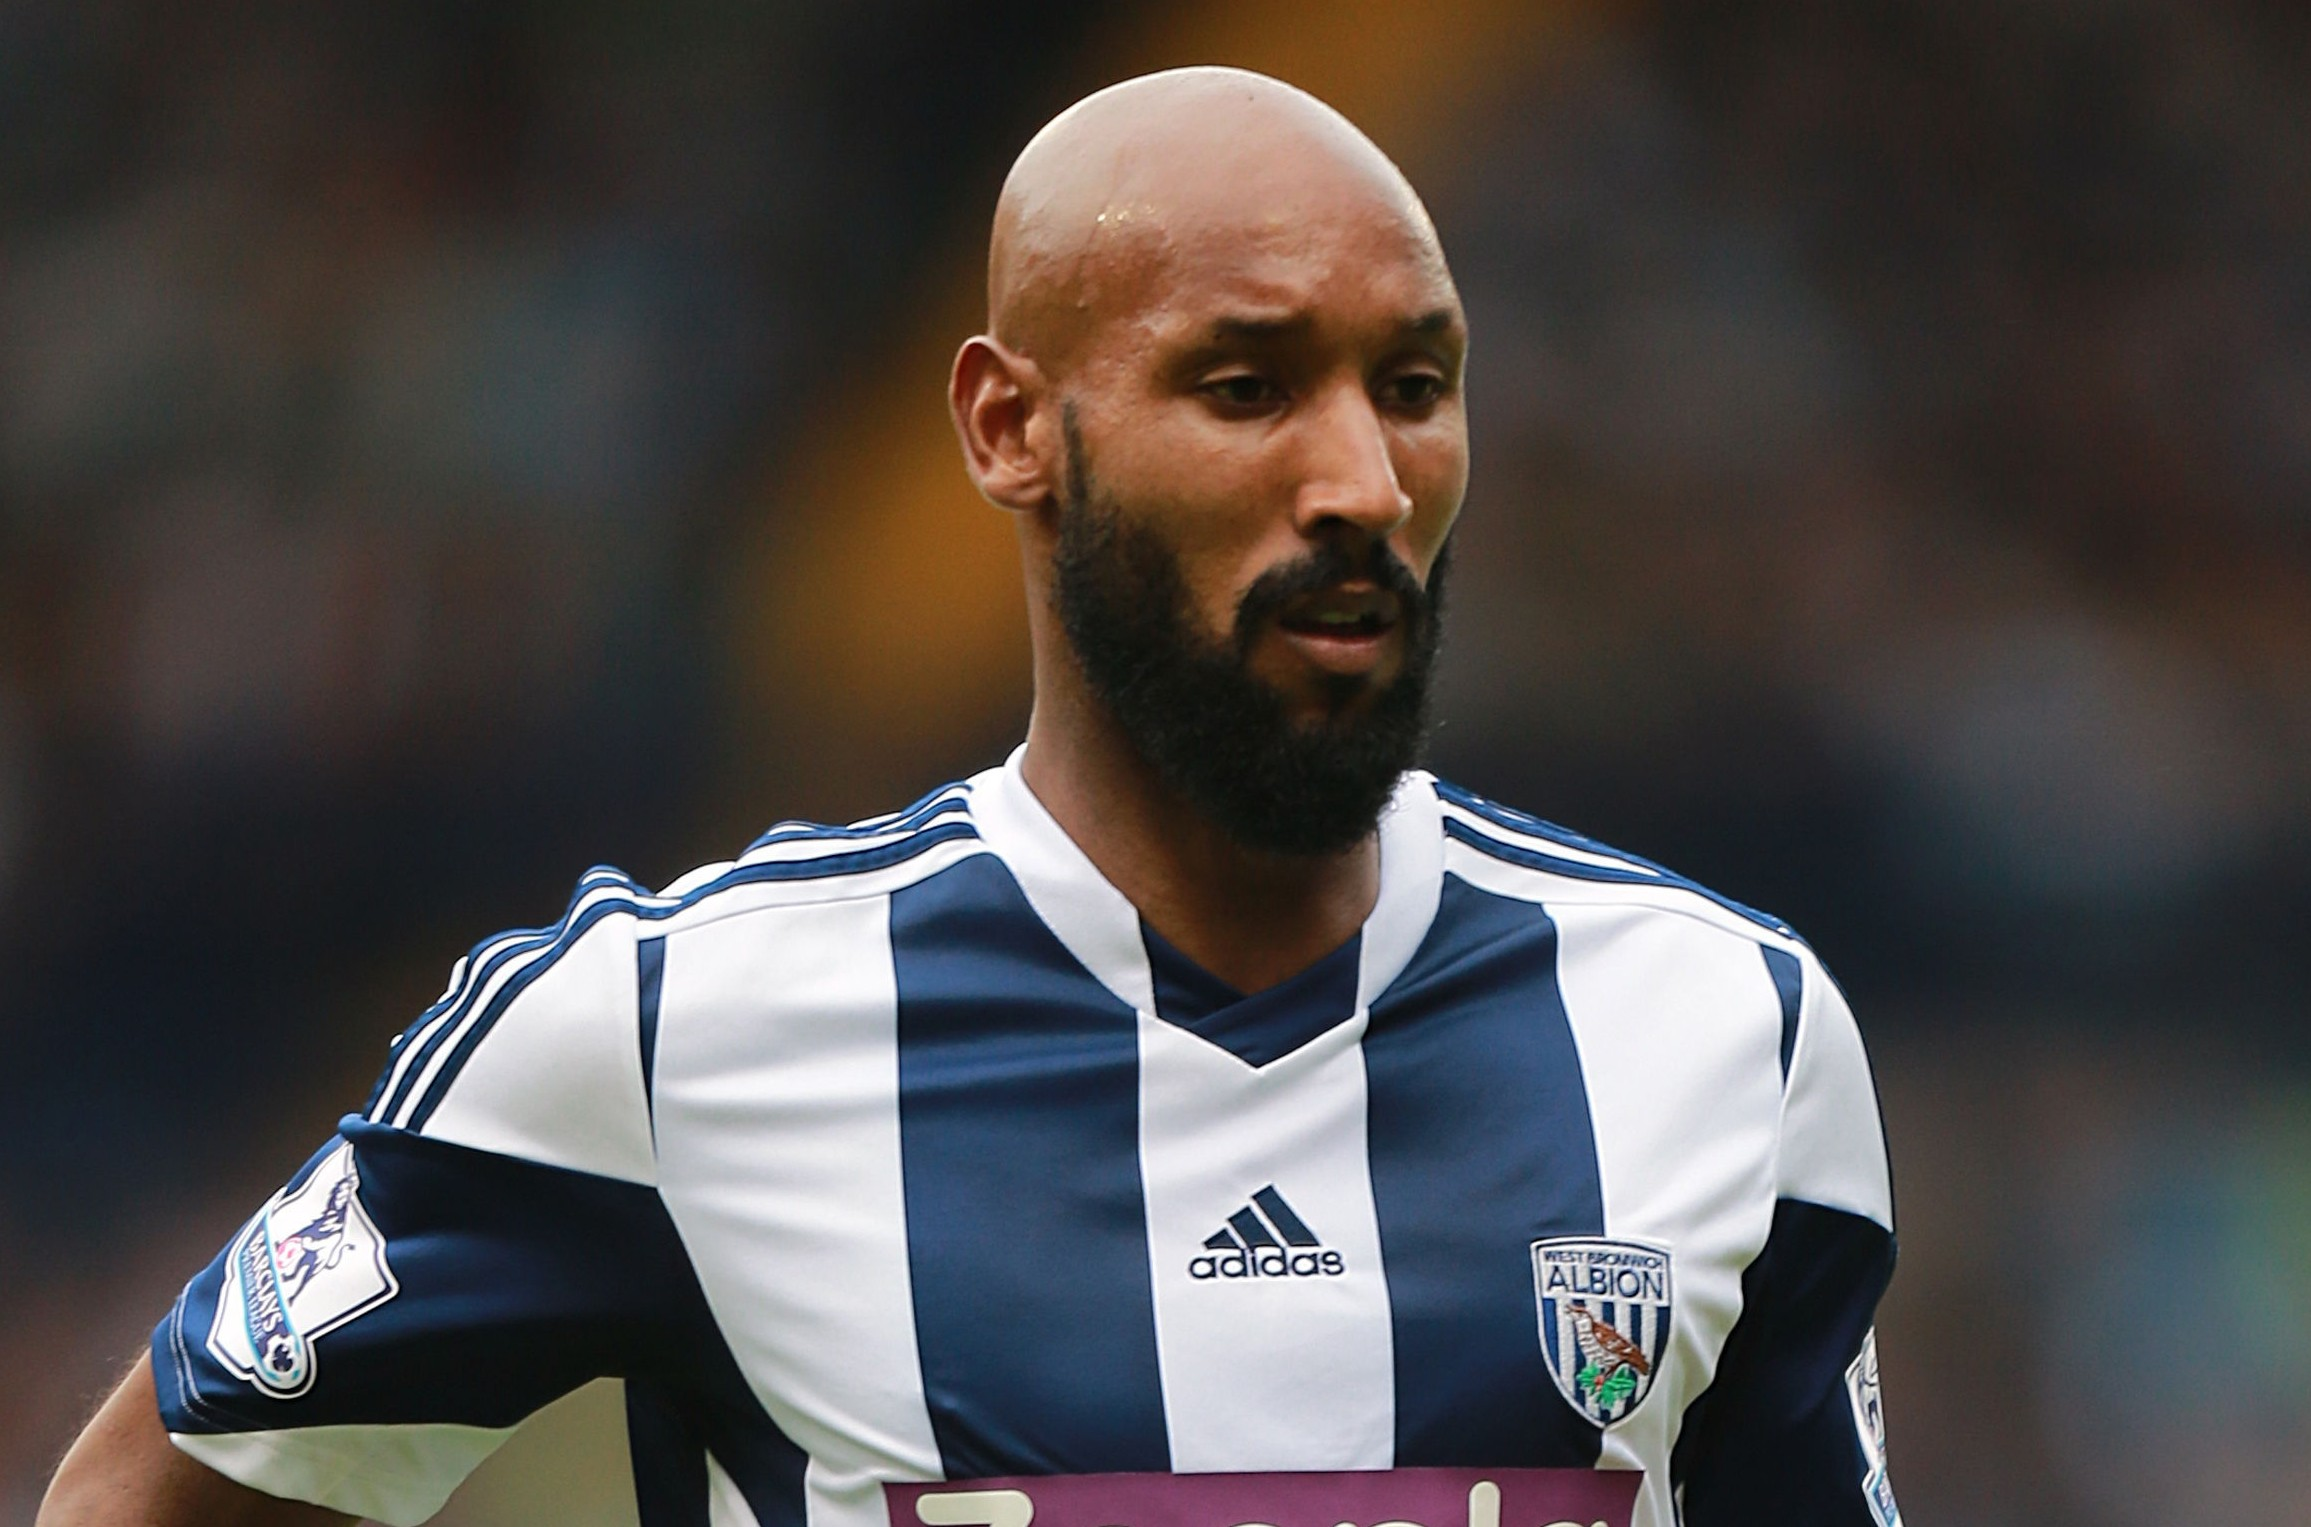 Top player: West Brom have signed Nicolas Anelka but few other stars (Picture: AP)